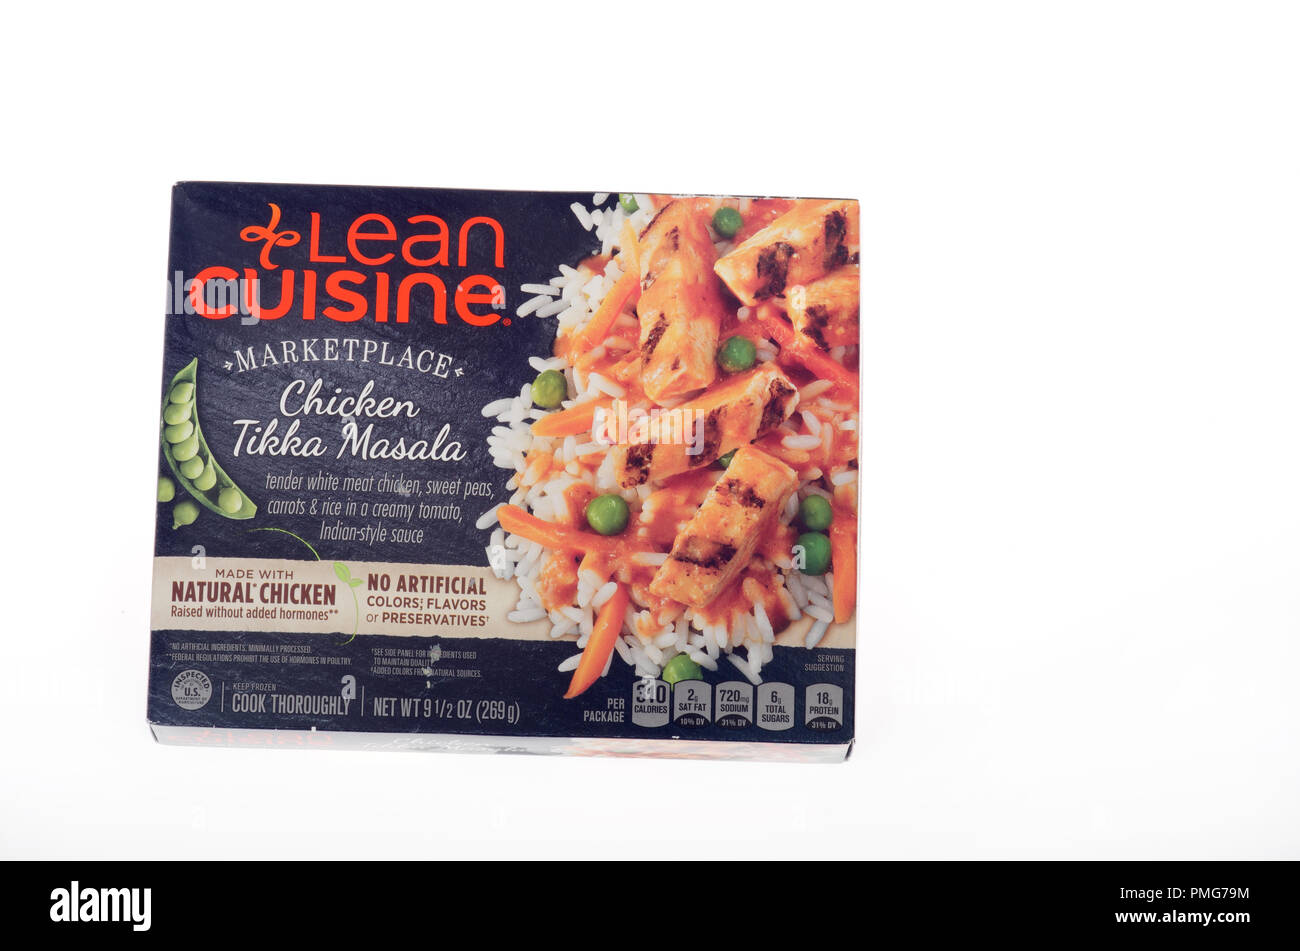 Frozen Lean Cuisine Marketplace Chicken Tikka Masala box on white background - Stock Image